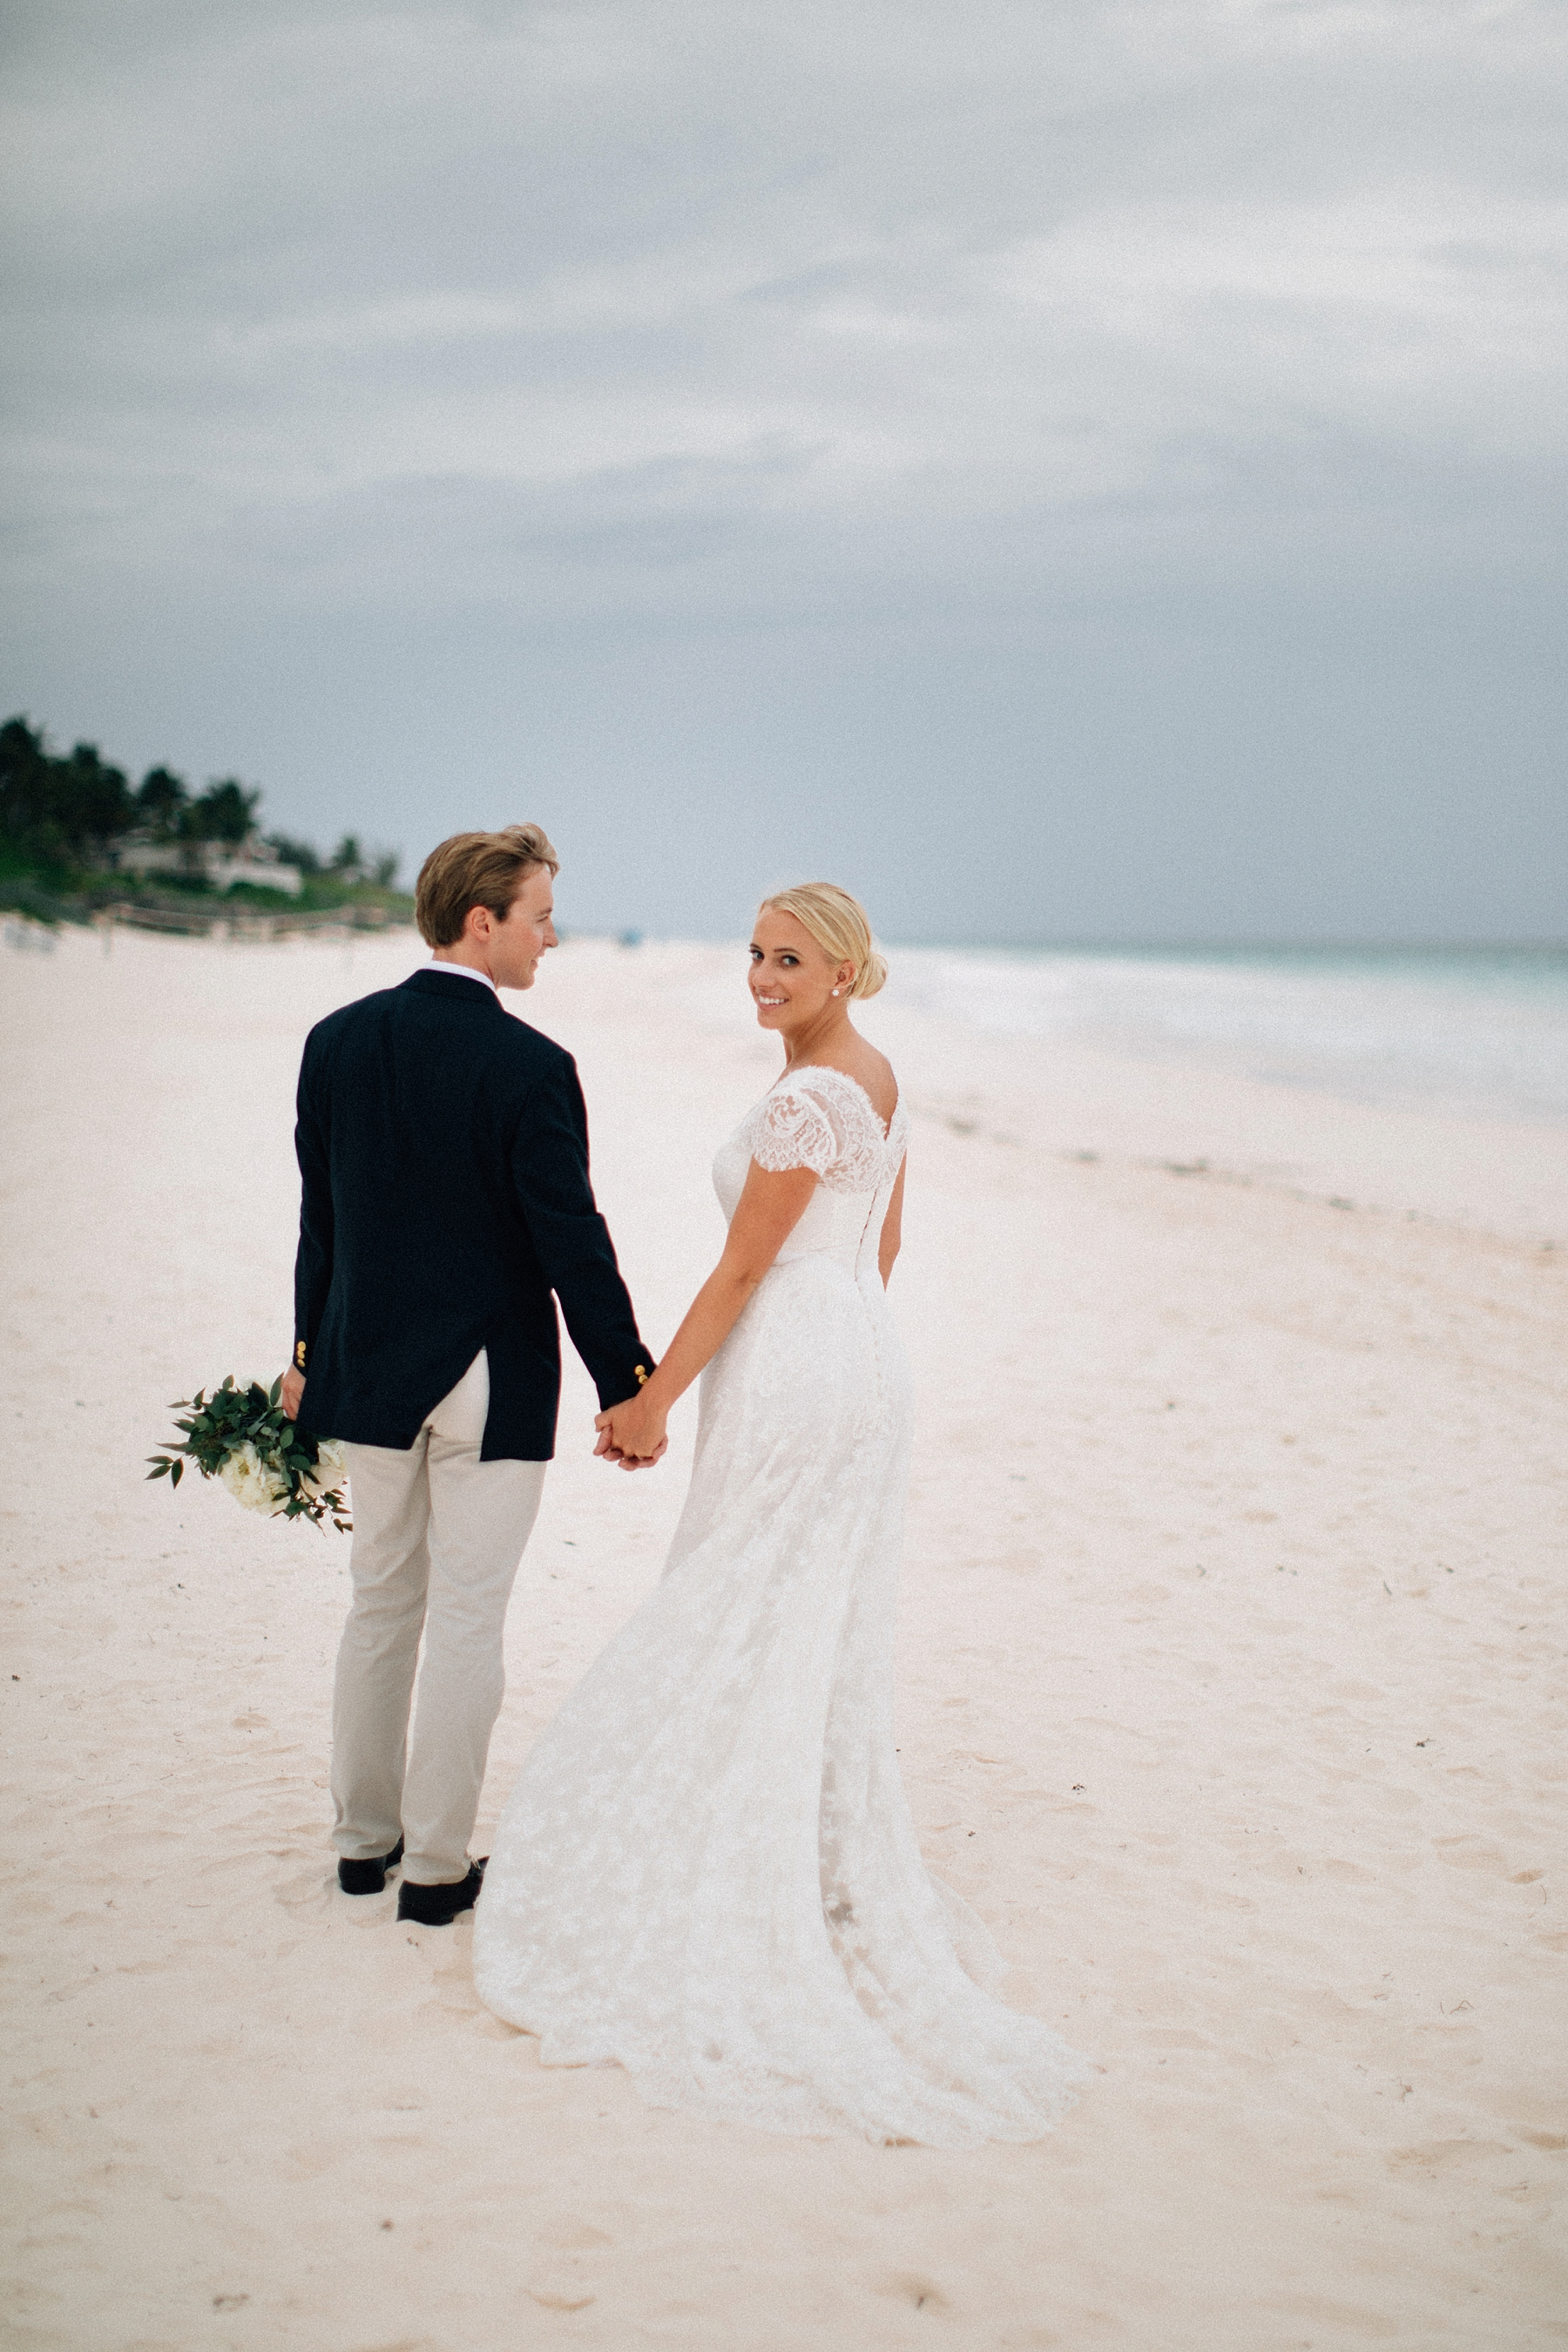 briland-wedding-photographer-harbour-island-bahamas_0036.jpg